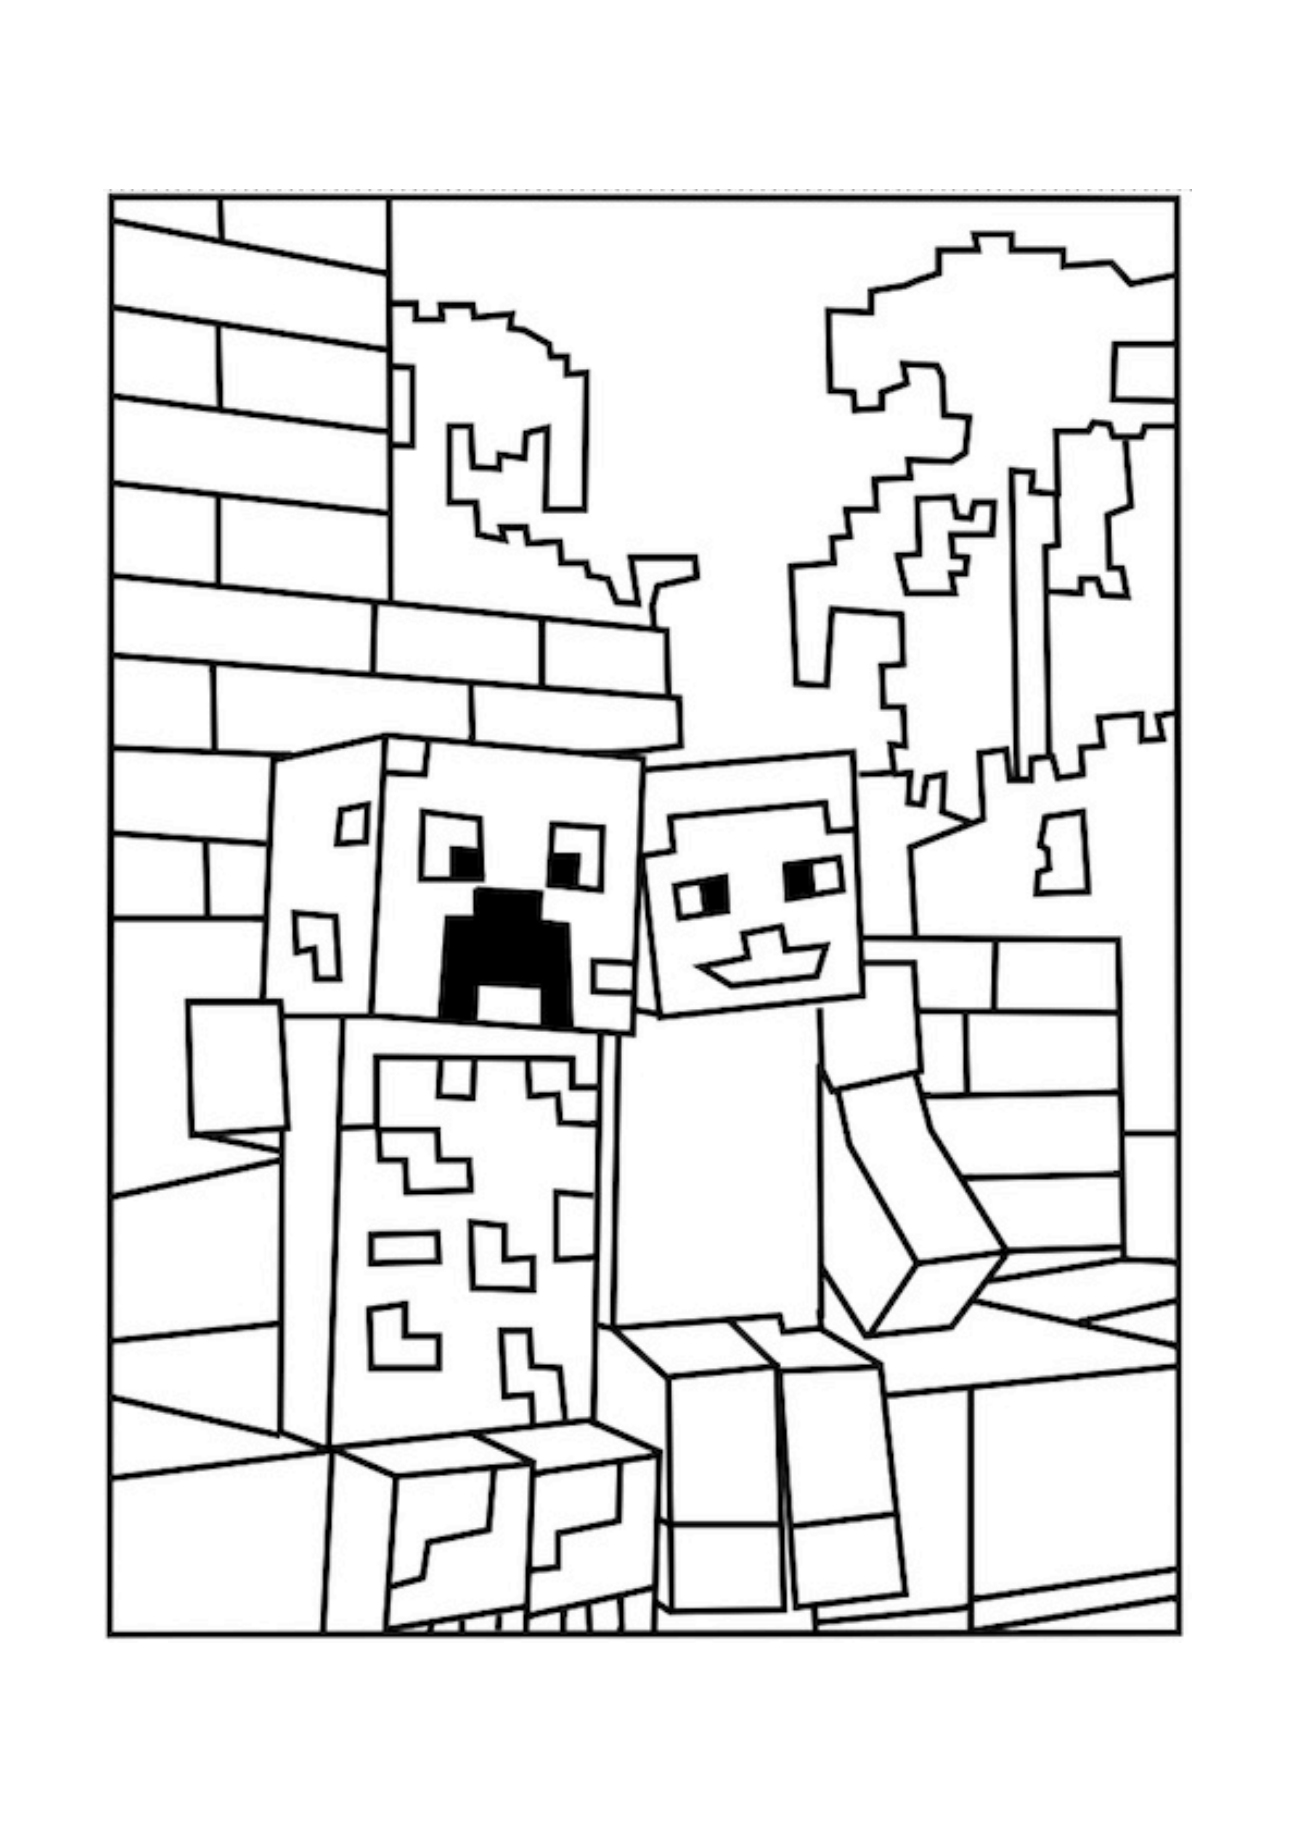 images of minecraft coloring pages minecraft coloring pages free large images of images pages minecraft coloring